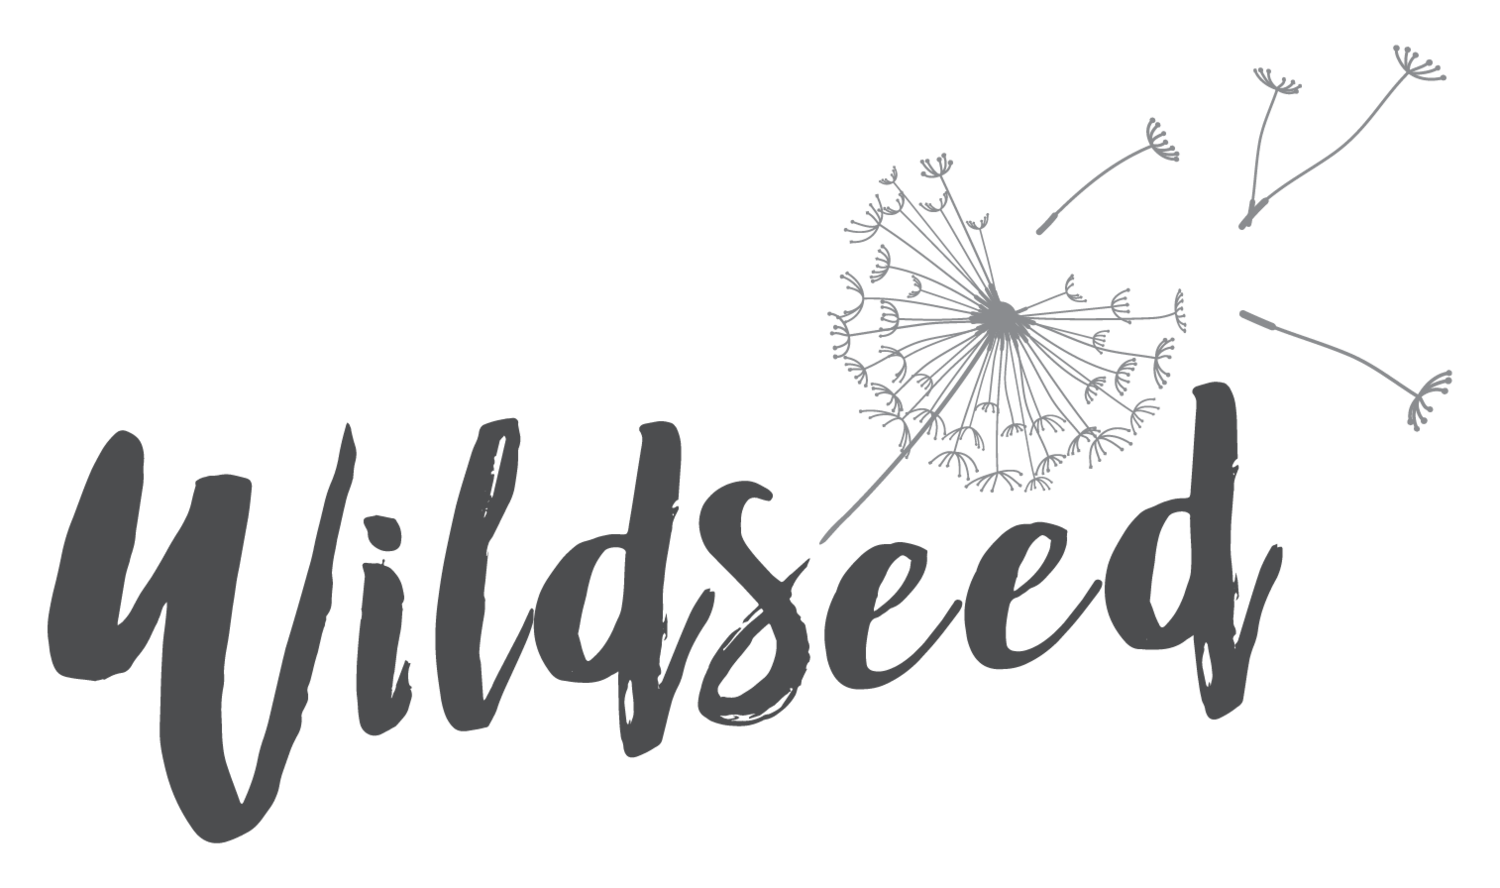 Wildseed | Pet-friendly floral cafe and patisserie